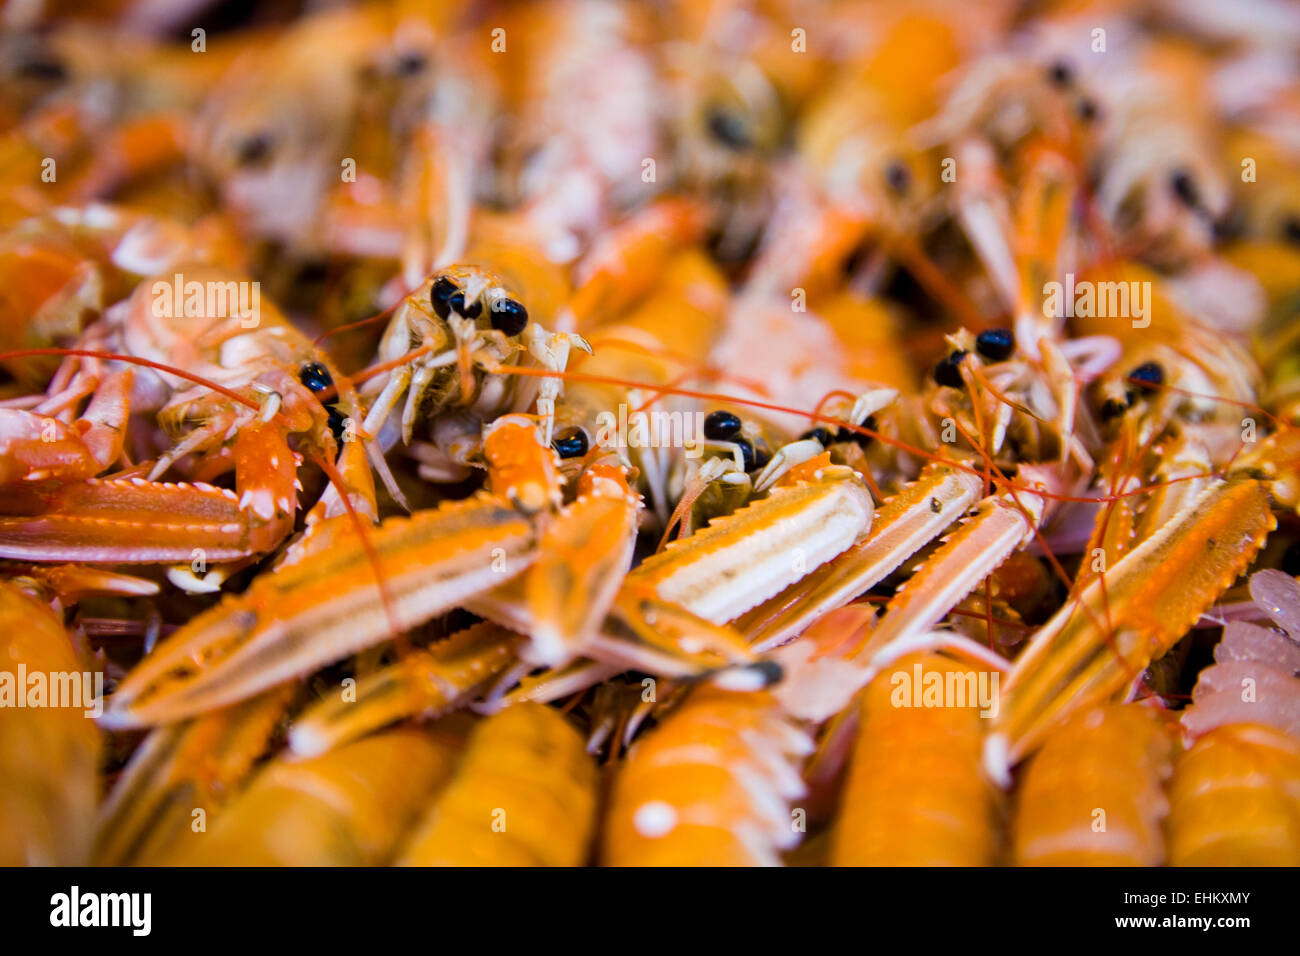 Langoustines in market, England, close up - Stock Image